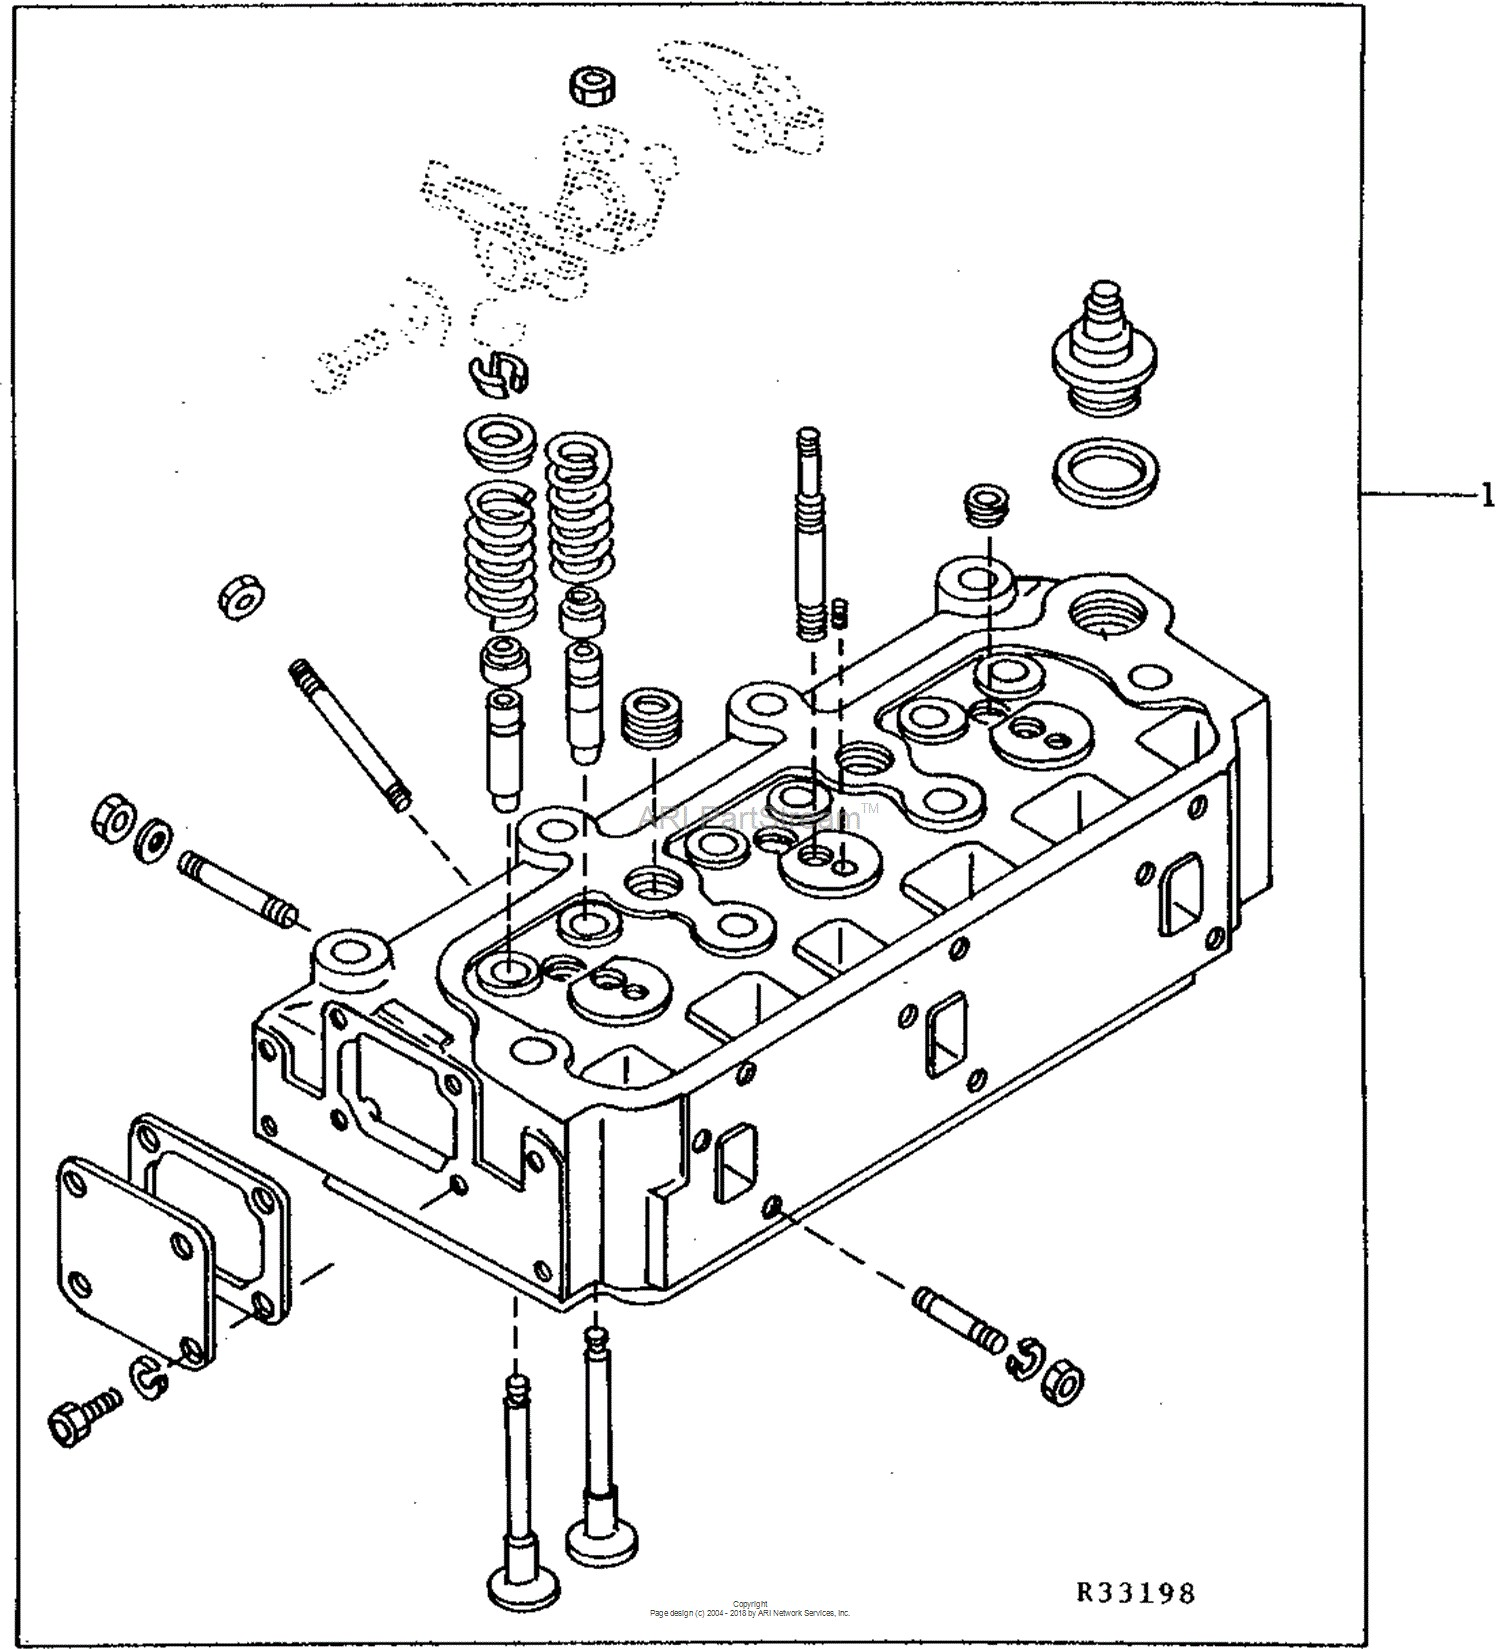 John Deere 445 Engine Diagram